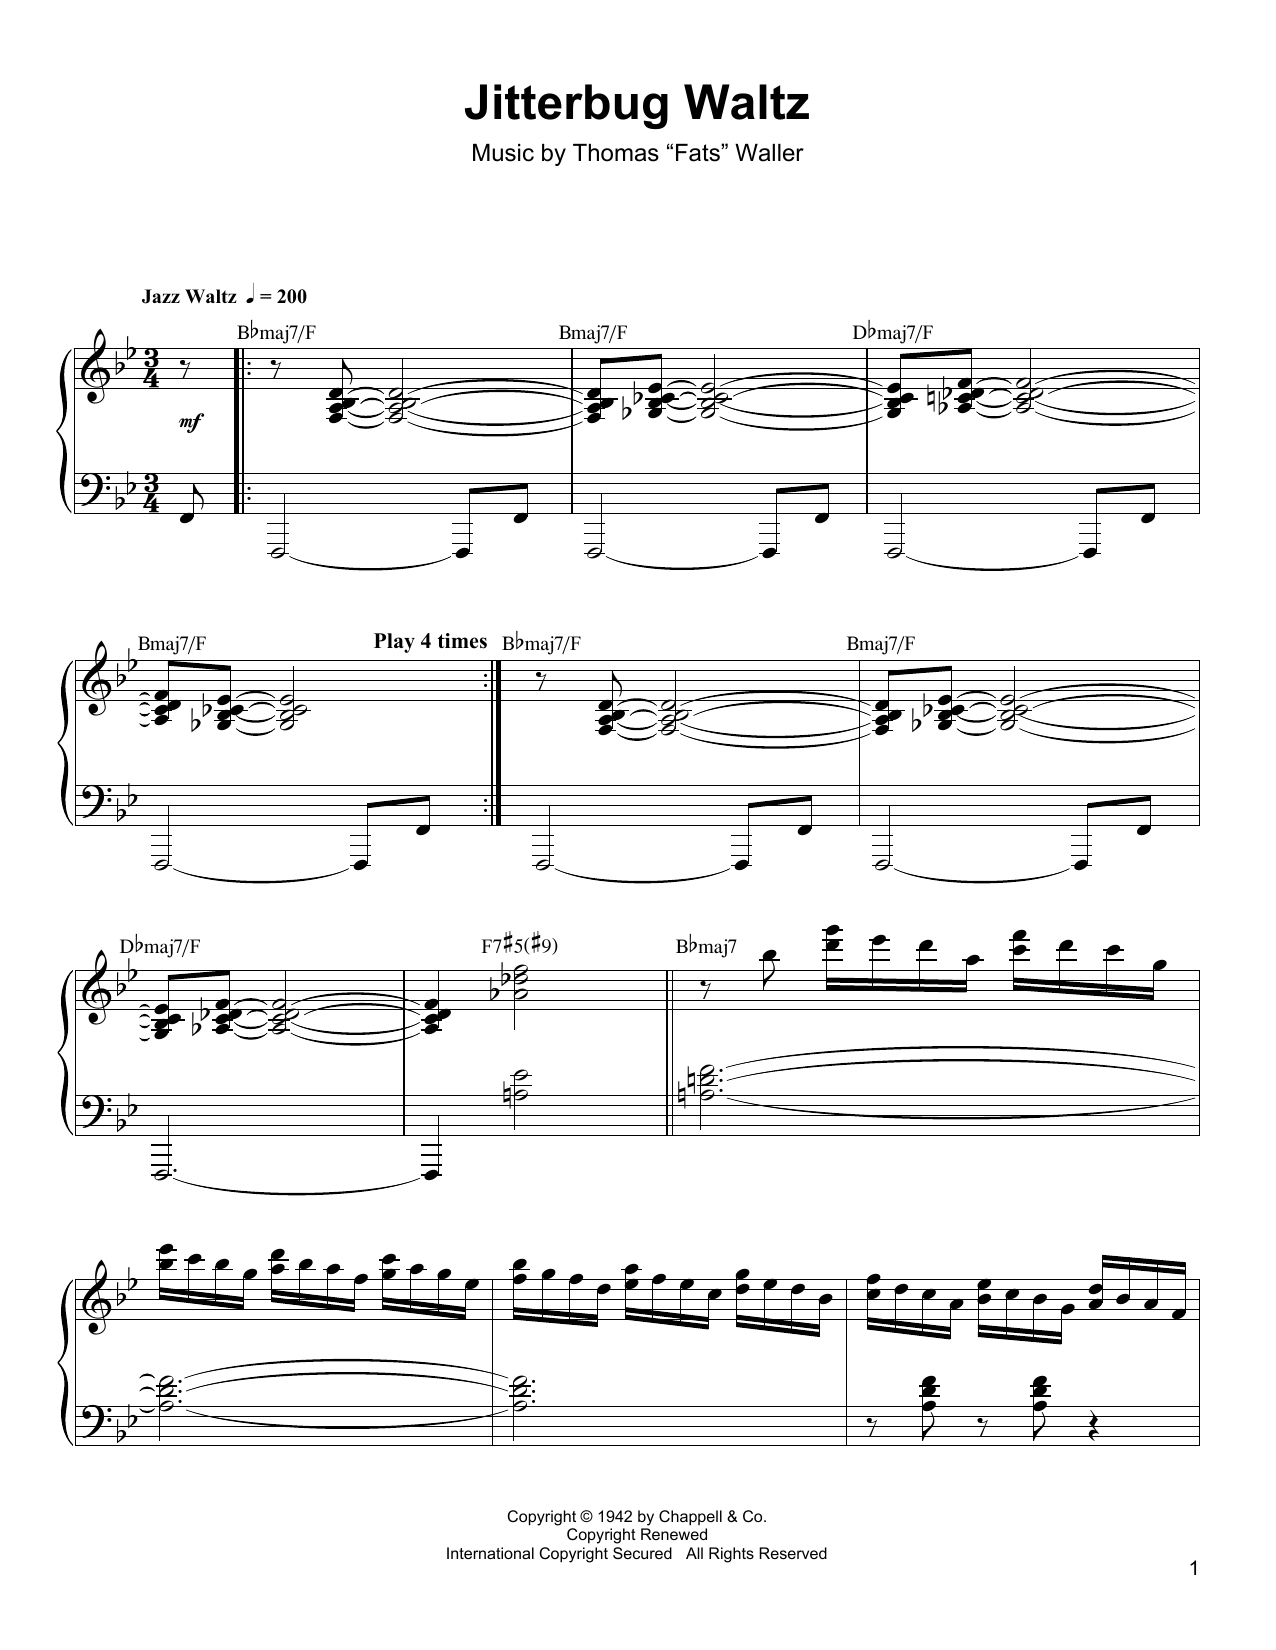 Jitterbug Waltz Sheet Music